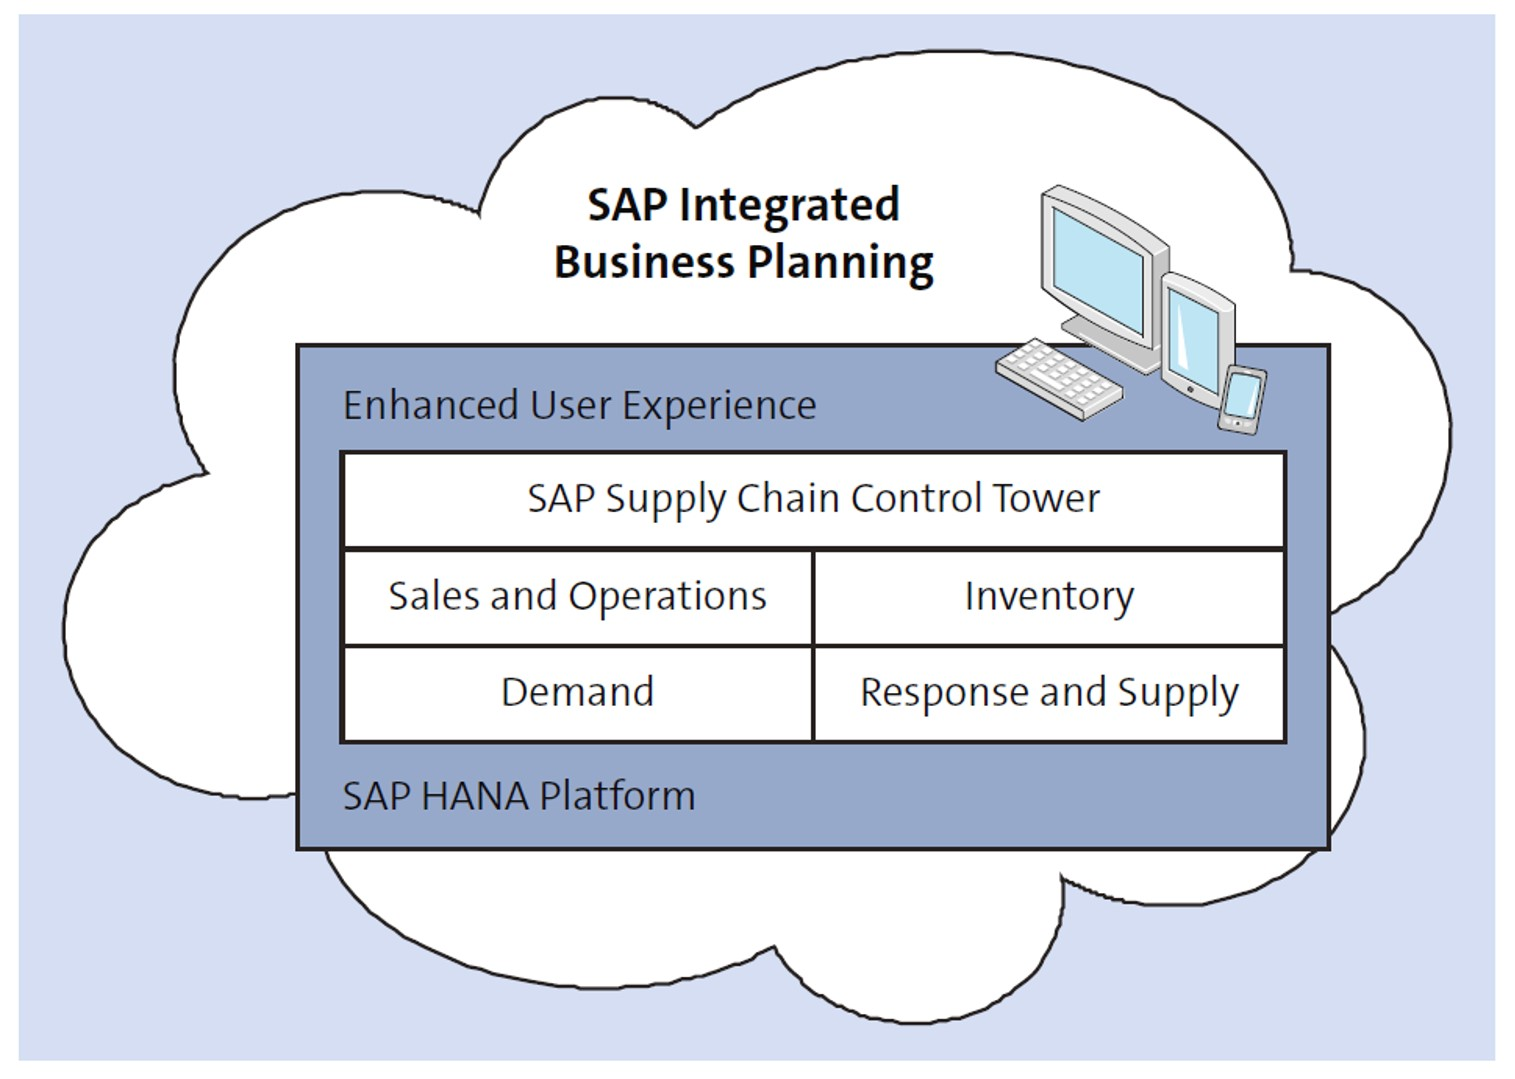 SAP Integrated Business Planning (SAP IBP) Overview